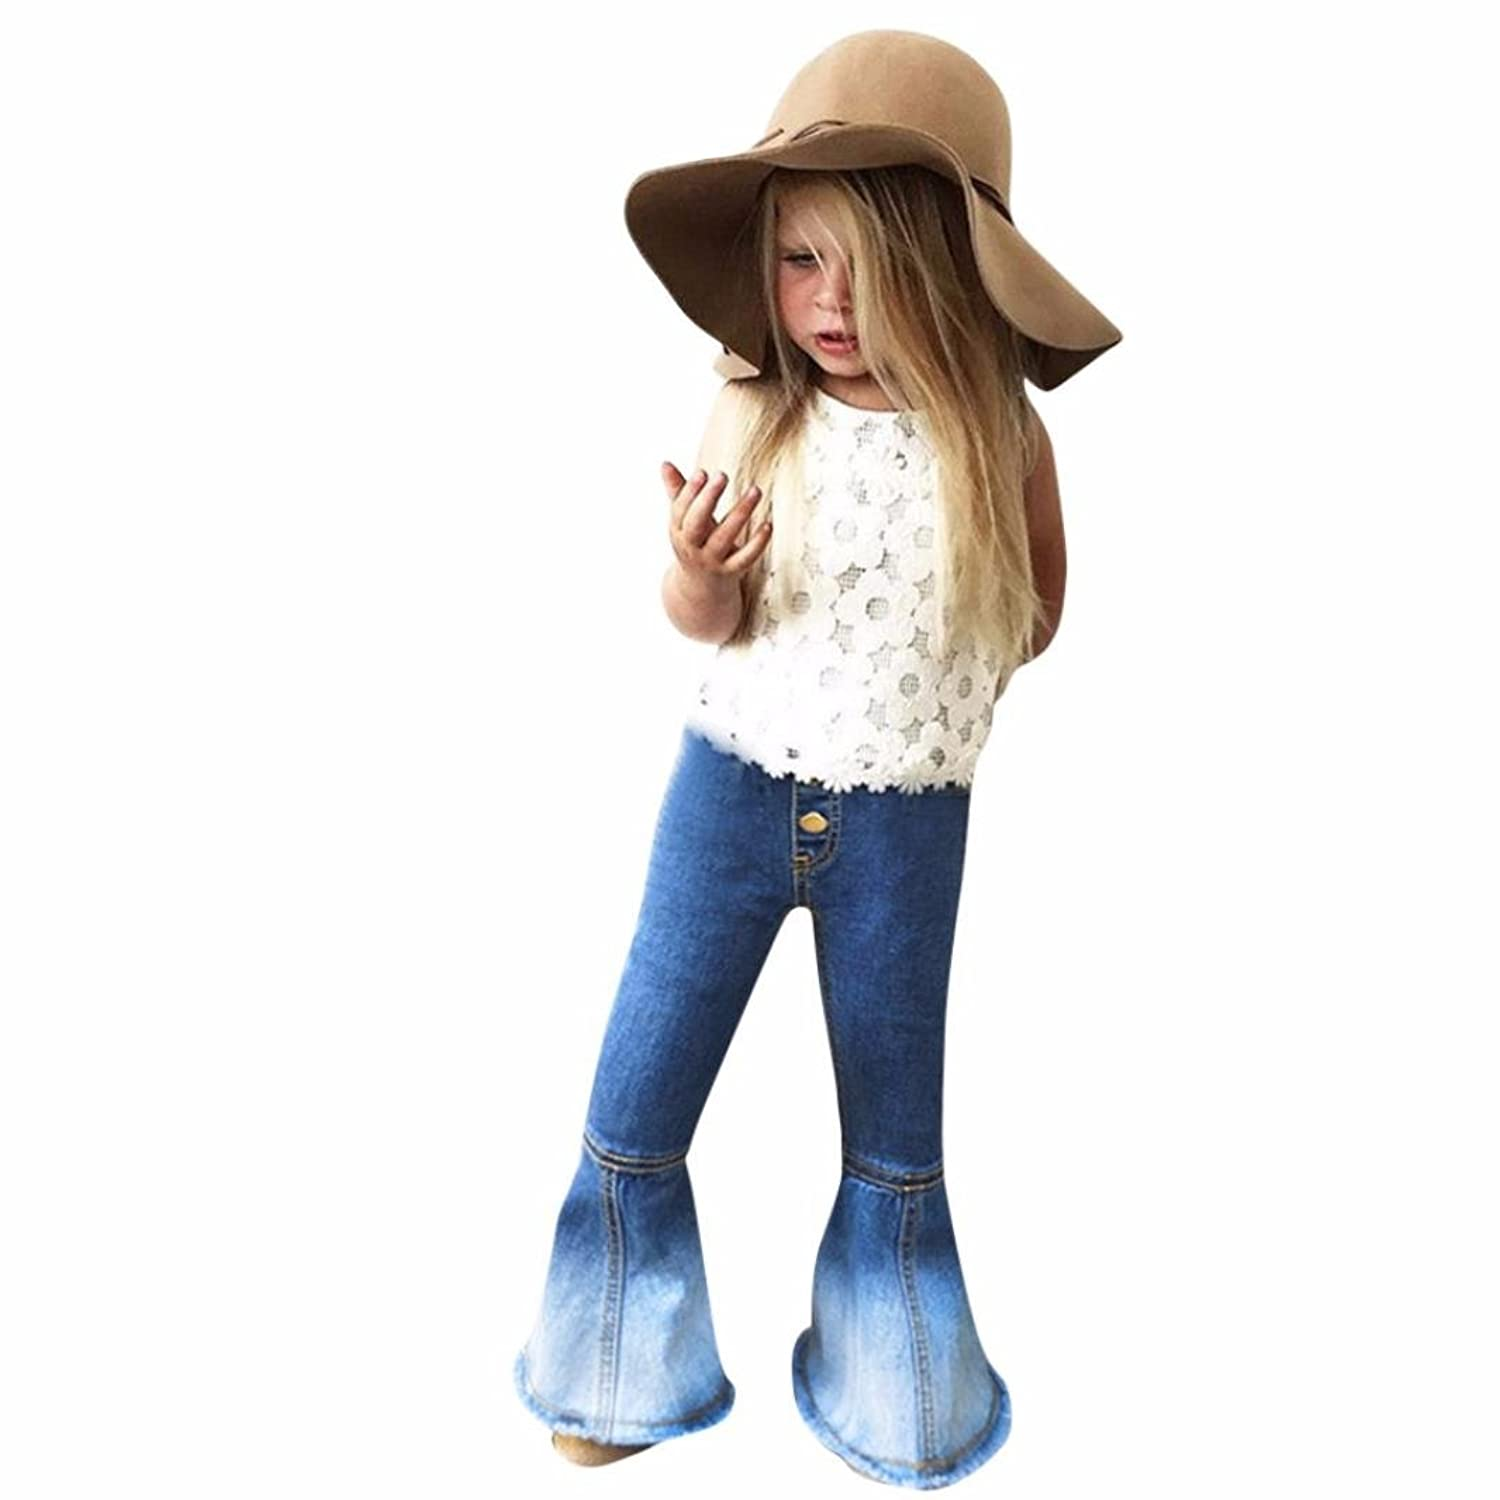 Vintage Style Children's Clothing: Girls, Boys, Baby, Toddler Minisoya Fashion children Infant Kid Baby Girls Vintage Jeans Splice Bell-Bottoms Denim Pants Flare Trousers $9.56 AT vintagedancer.com